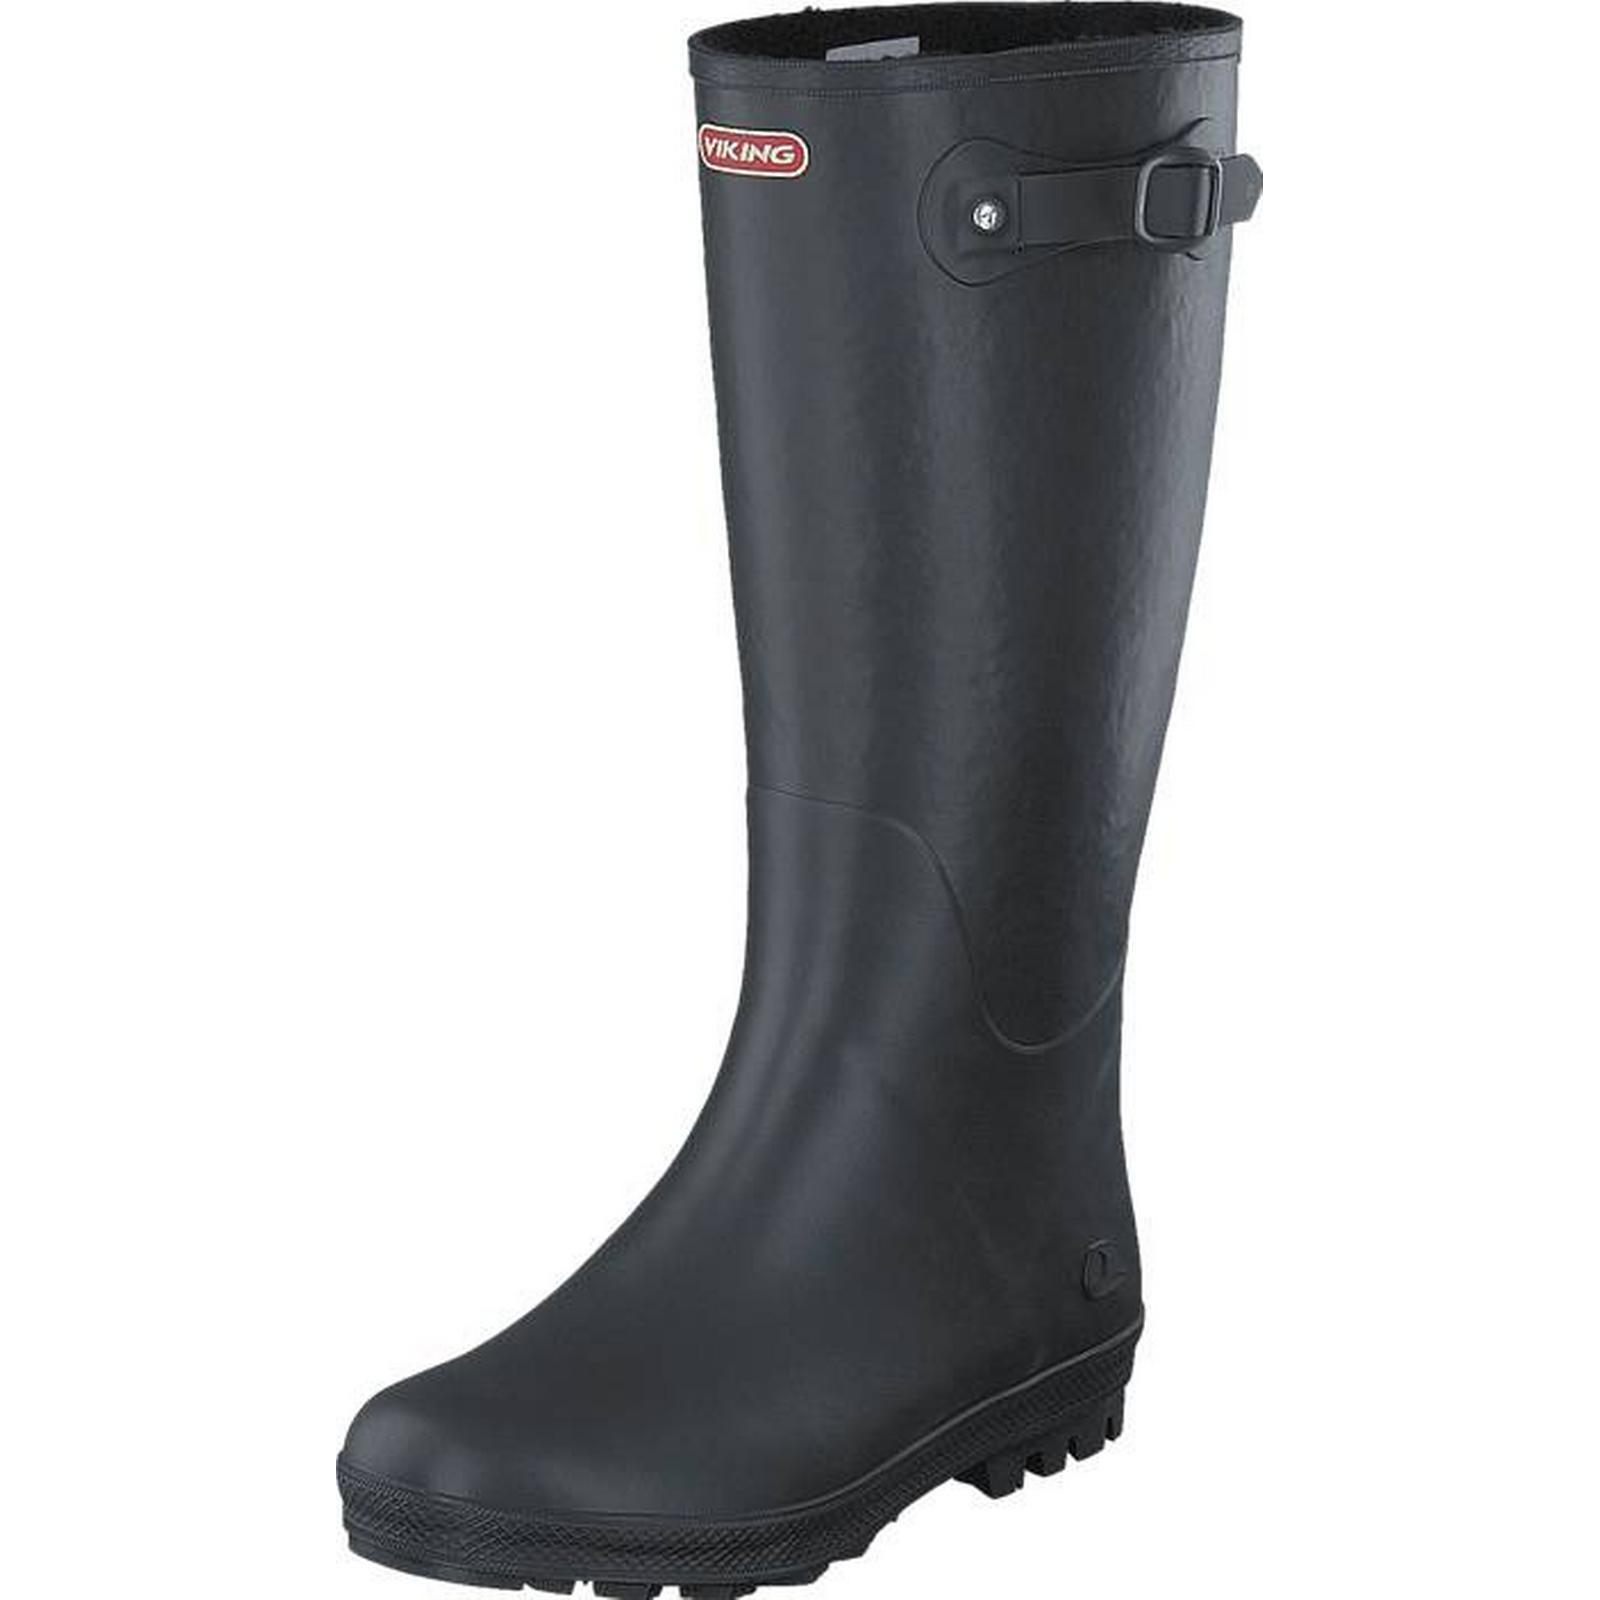 Viking Vinter Foxy Vinter Viking Black, Shoes, High boots & Booties, Tall Wellies, Grey, Female, 40 f30ace